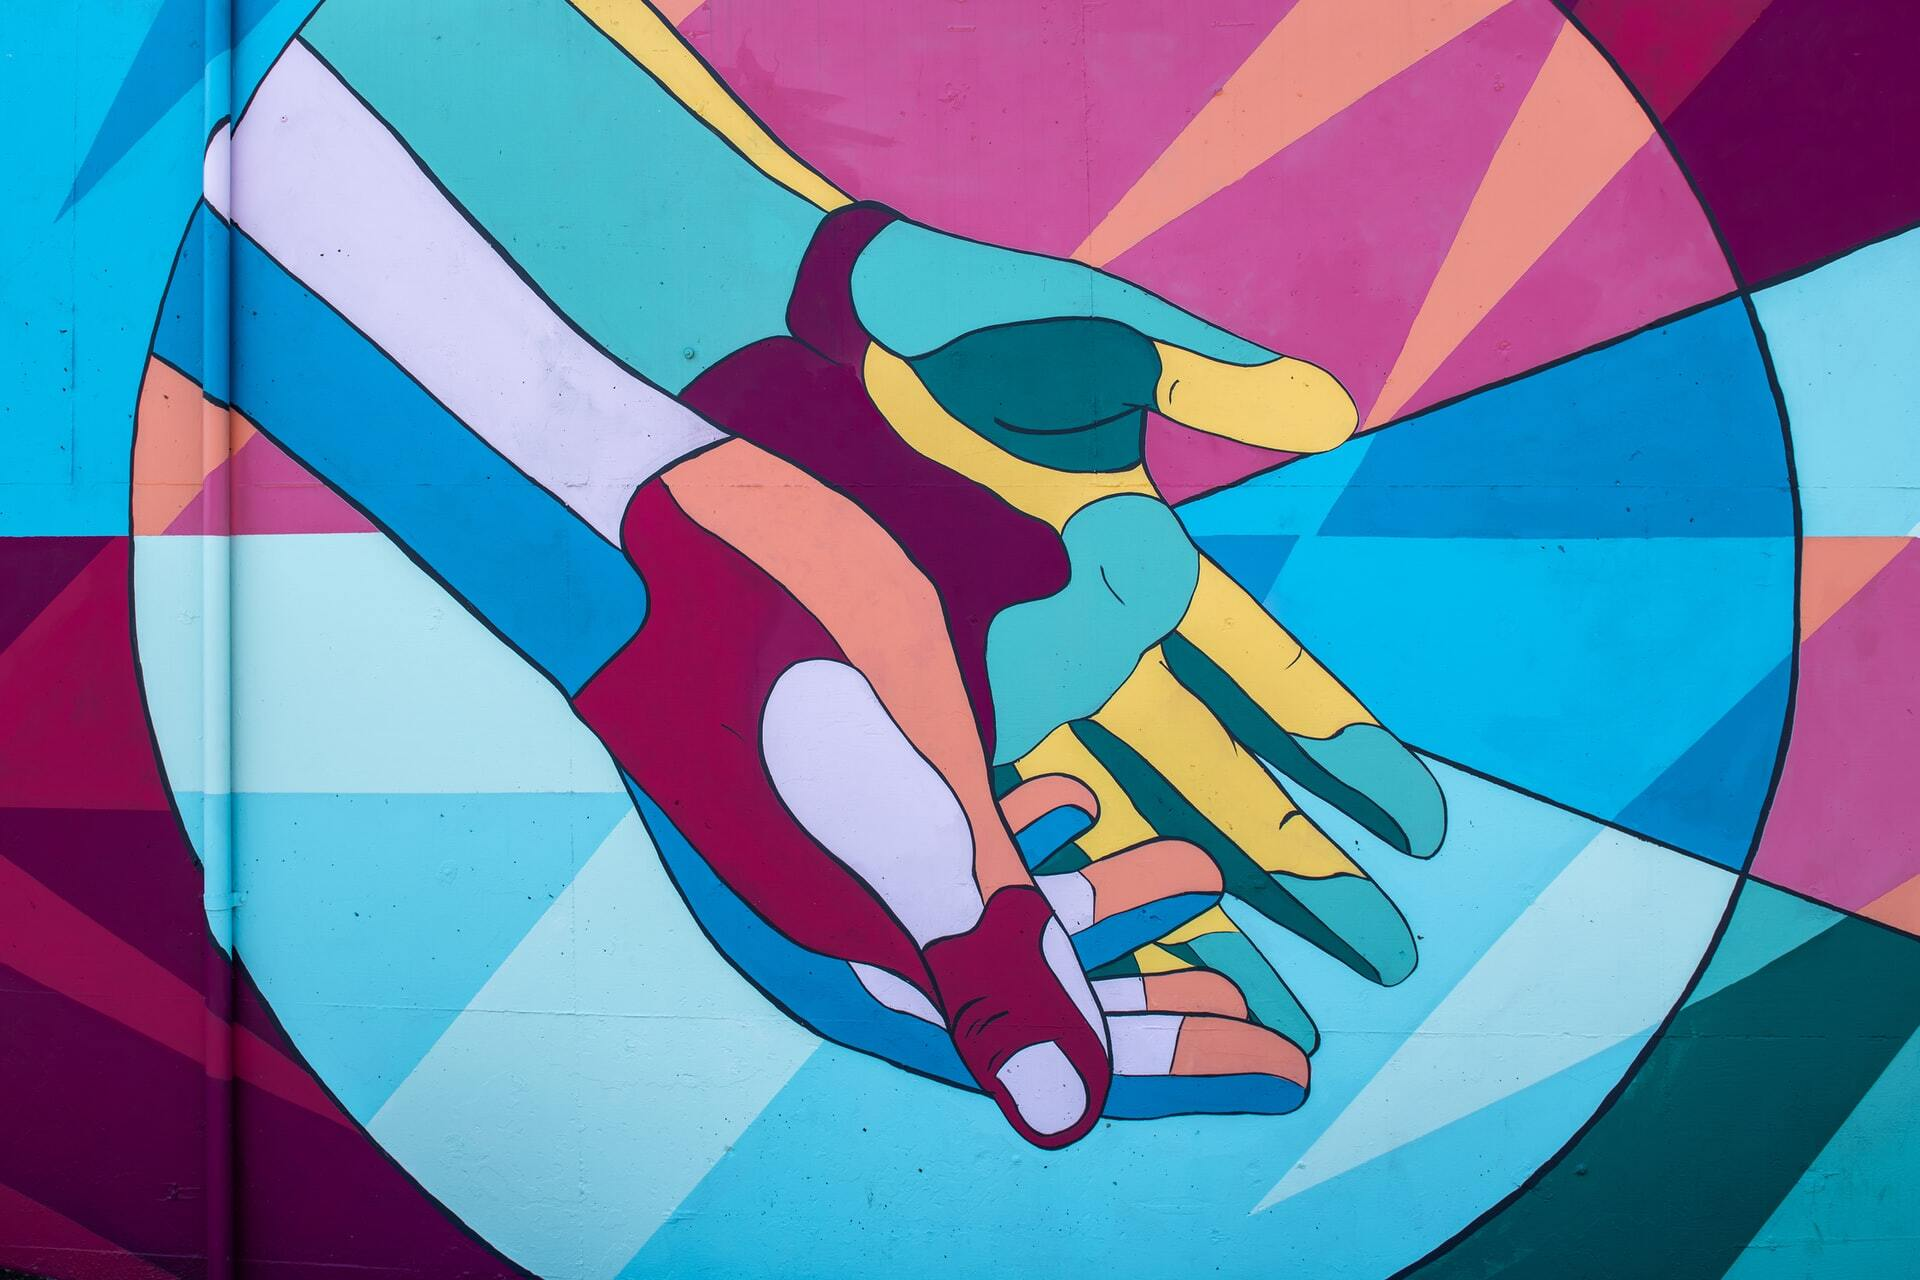 A painting of two hands kindly sharing something